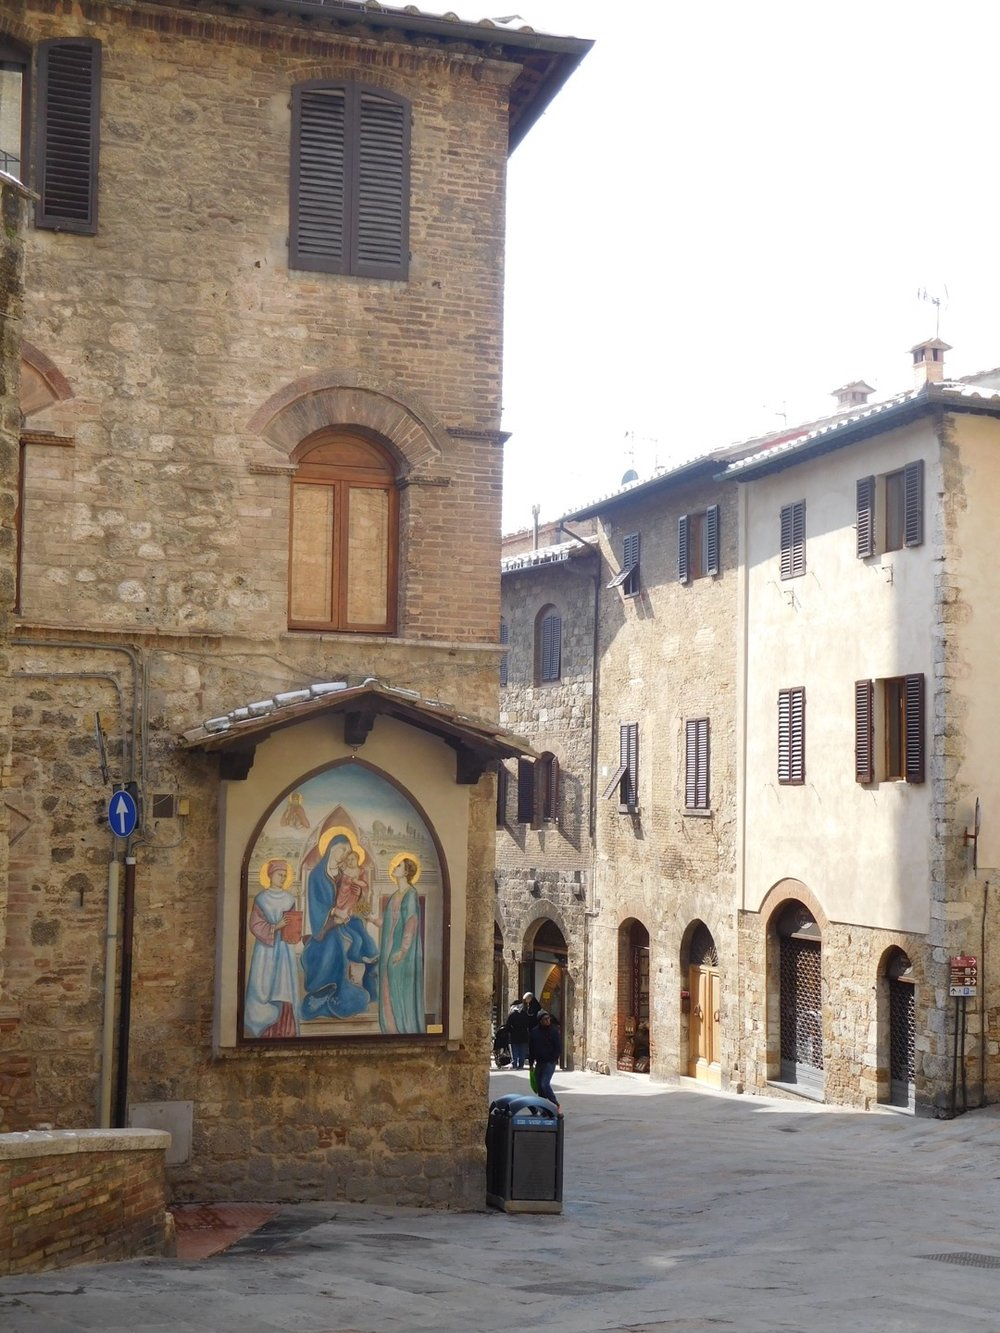 Beautiful art can be found along the streets of San Gimignano.